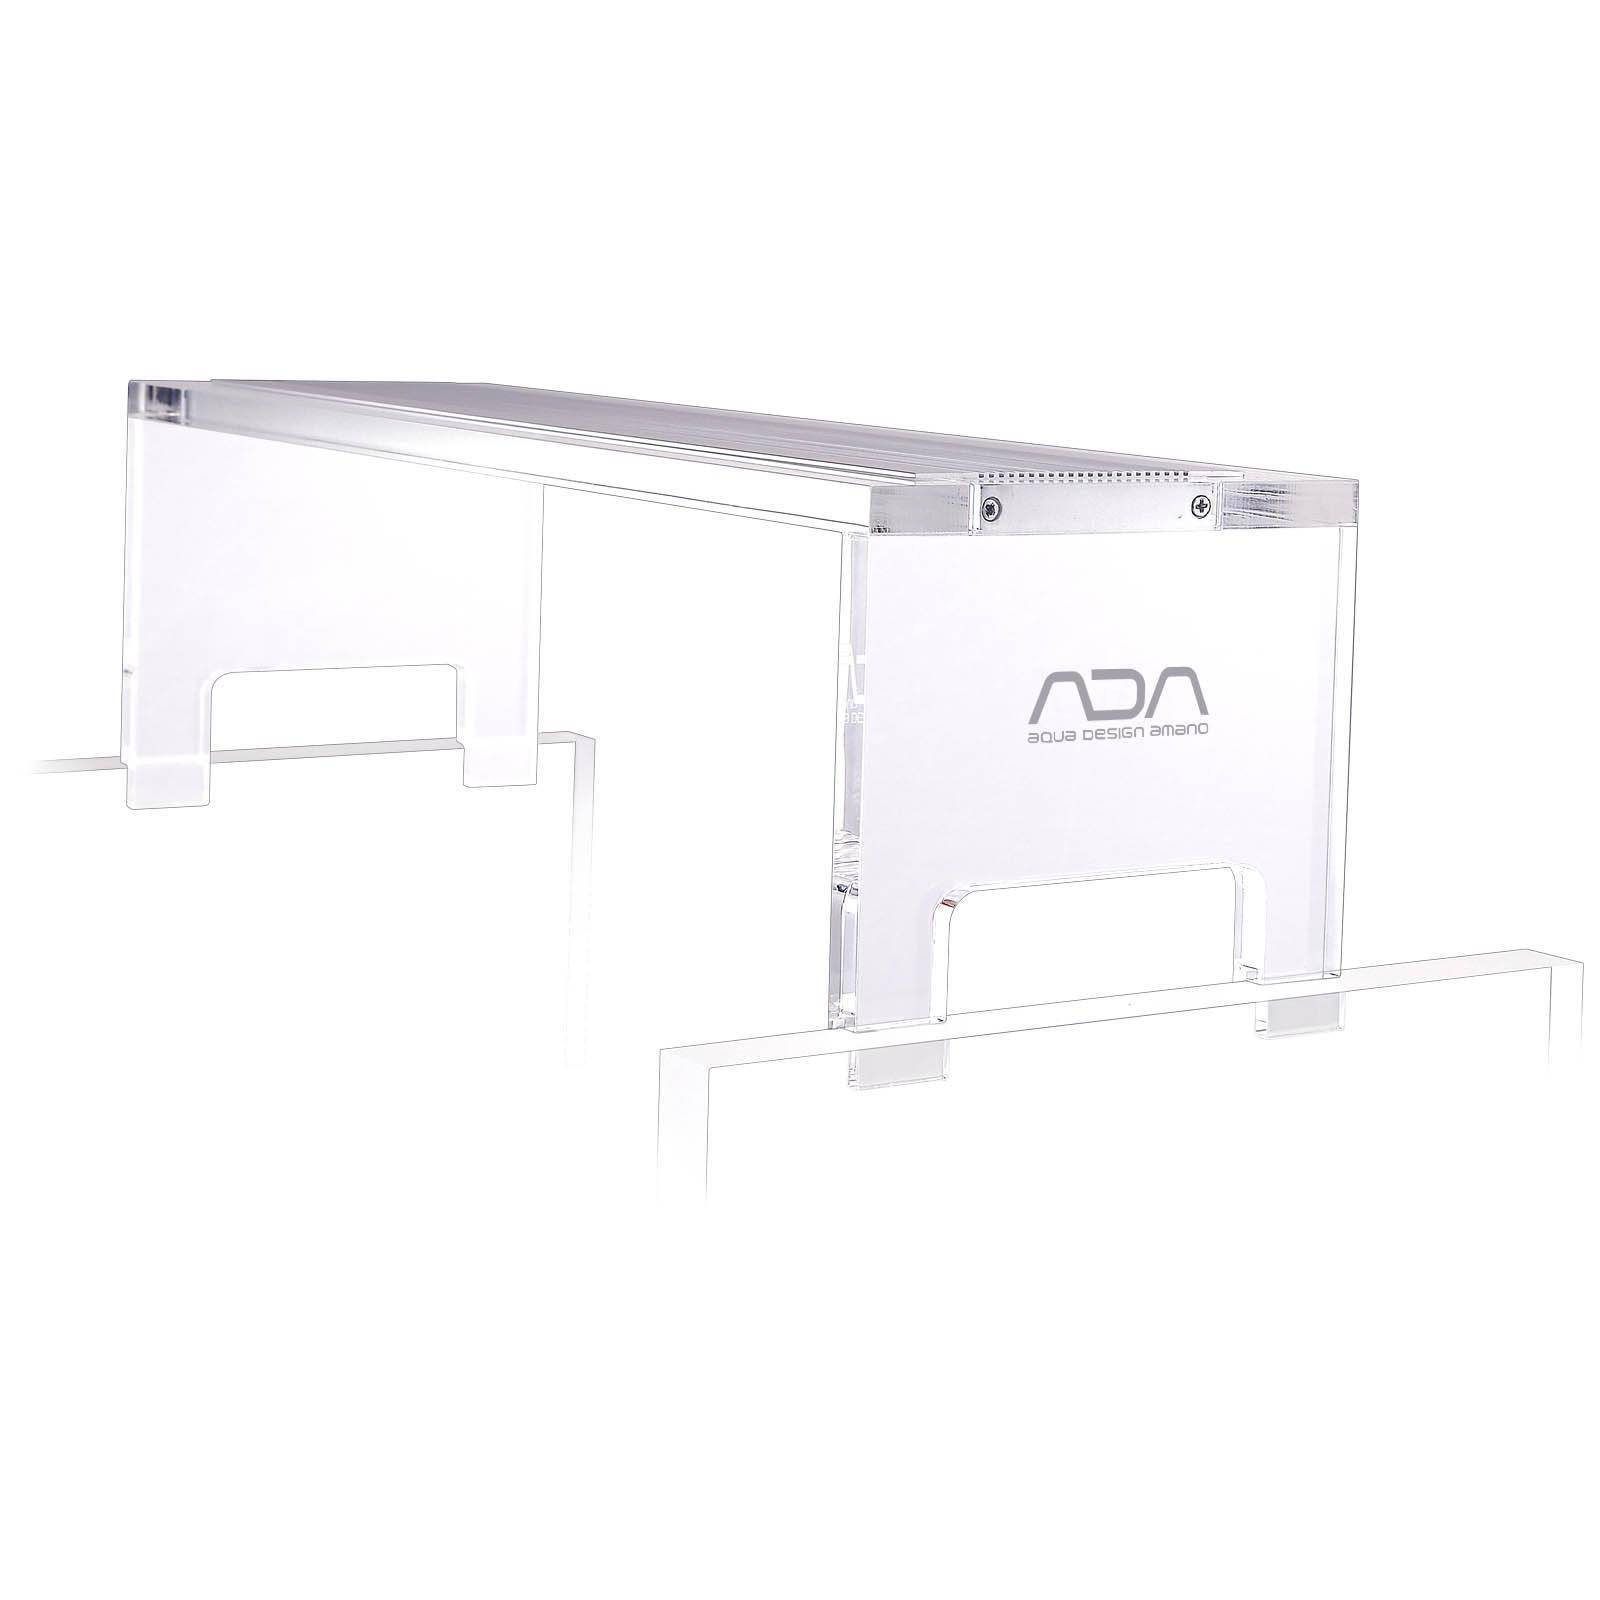 ADA - AQUASKY - 301 High Type